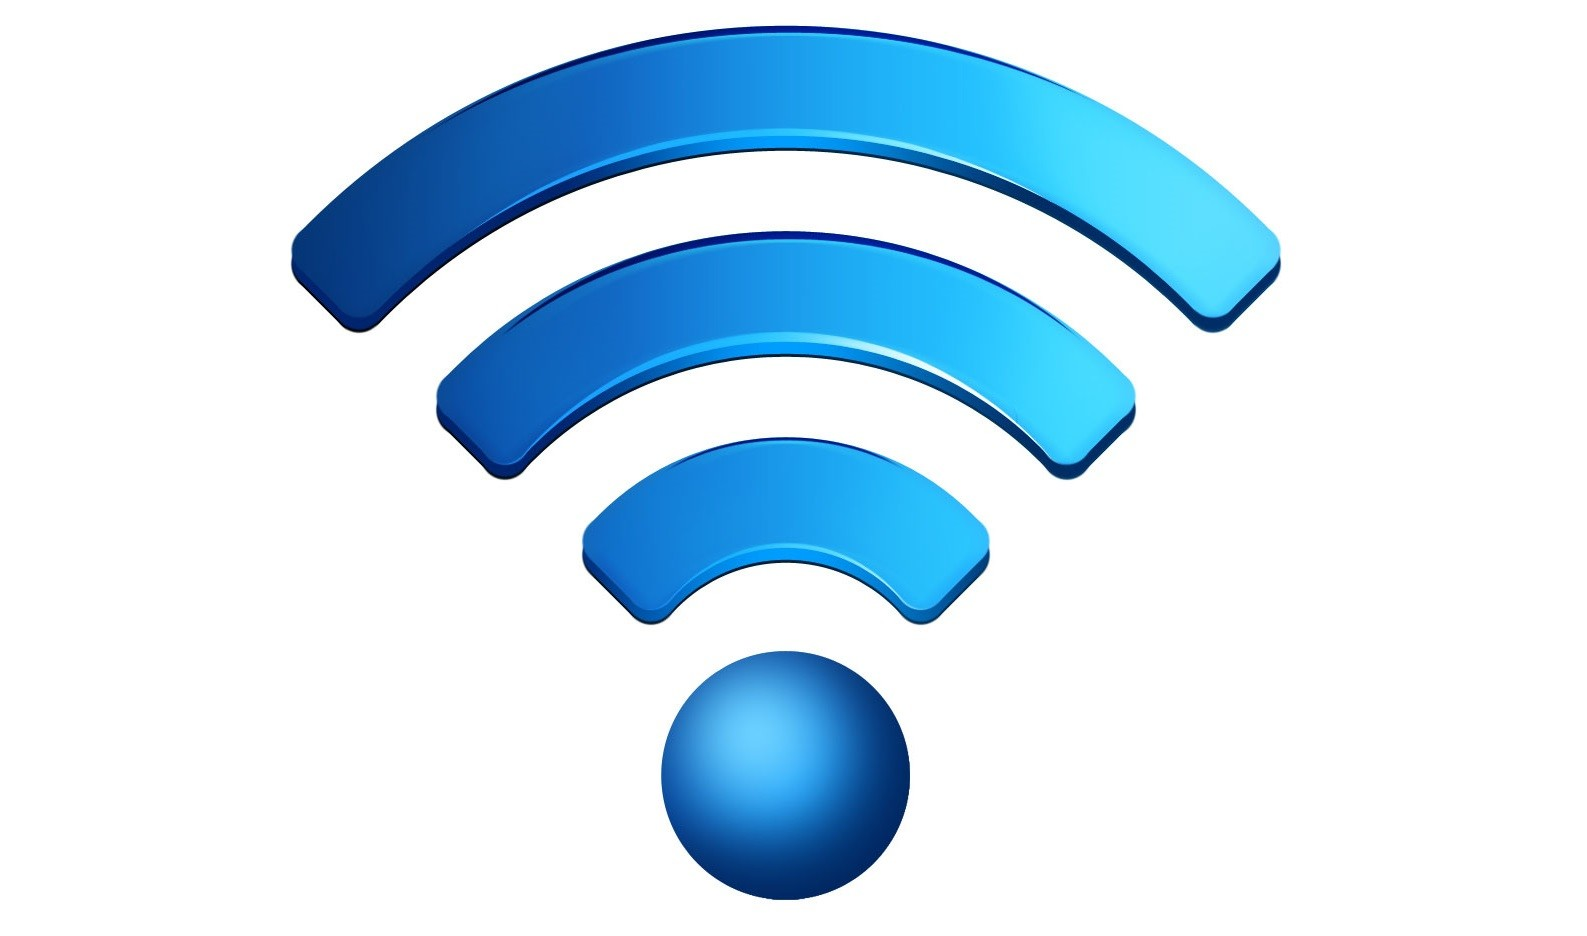 KRACK Attack Hacks All Wi-Fi Networks